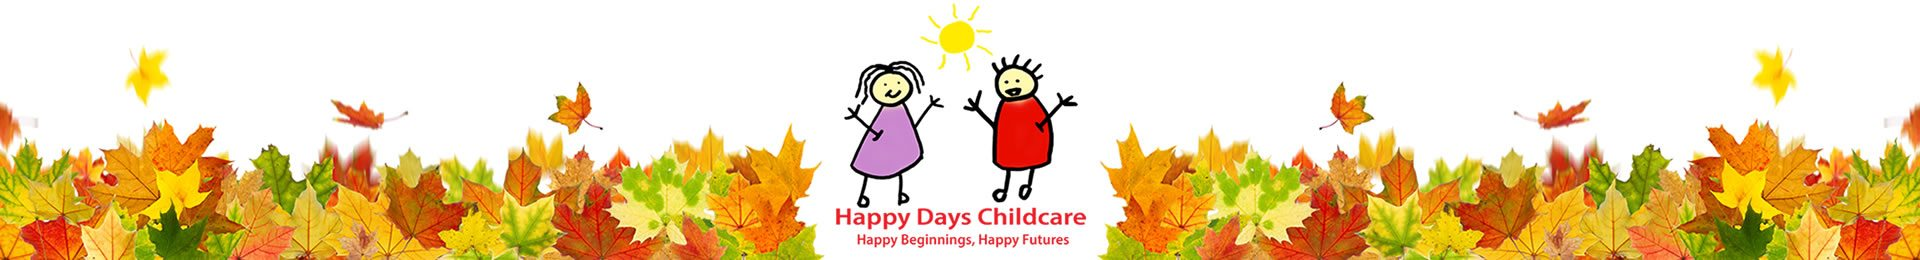 Happy Days Childcare Nursery Woodland Wanderers